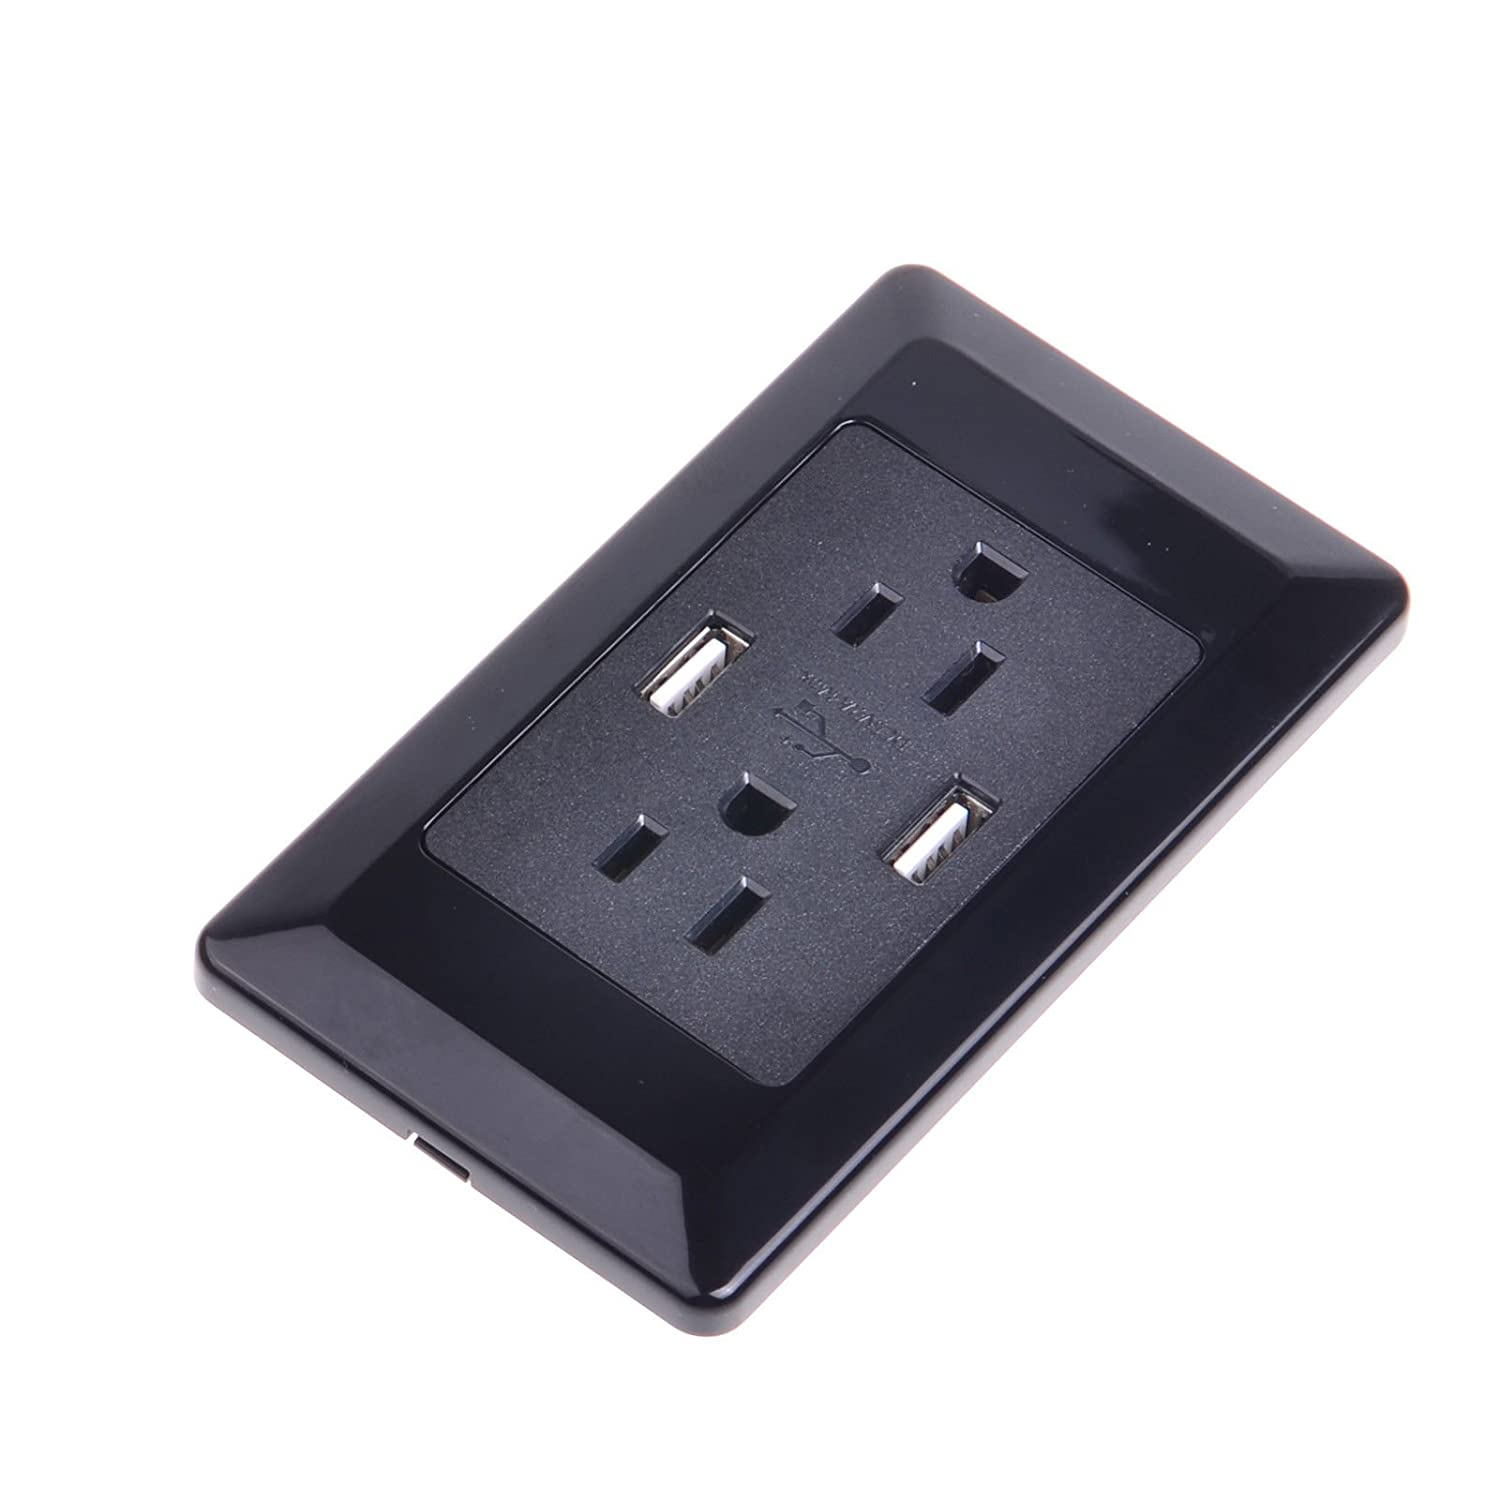 GREENCYCLE 2 Pack Smart Dual USB Charger Black Outlet Panel Receptacles 15A Electric Wall Charger Powe Plate Dock Station Socket